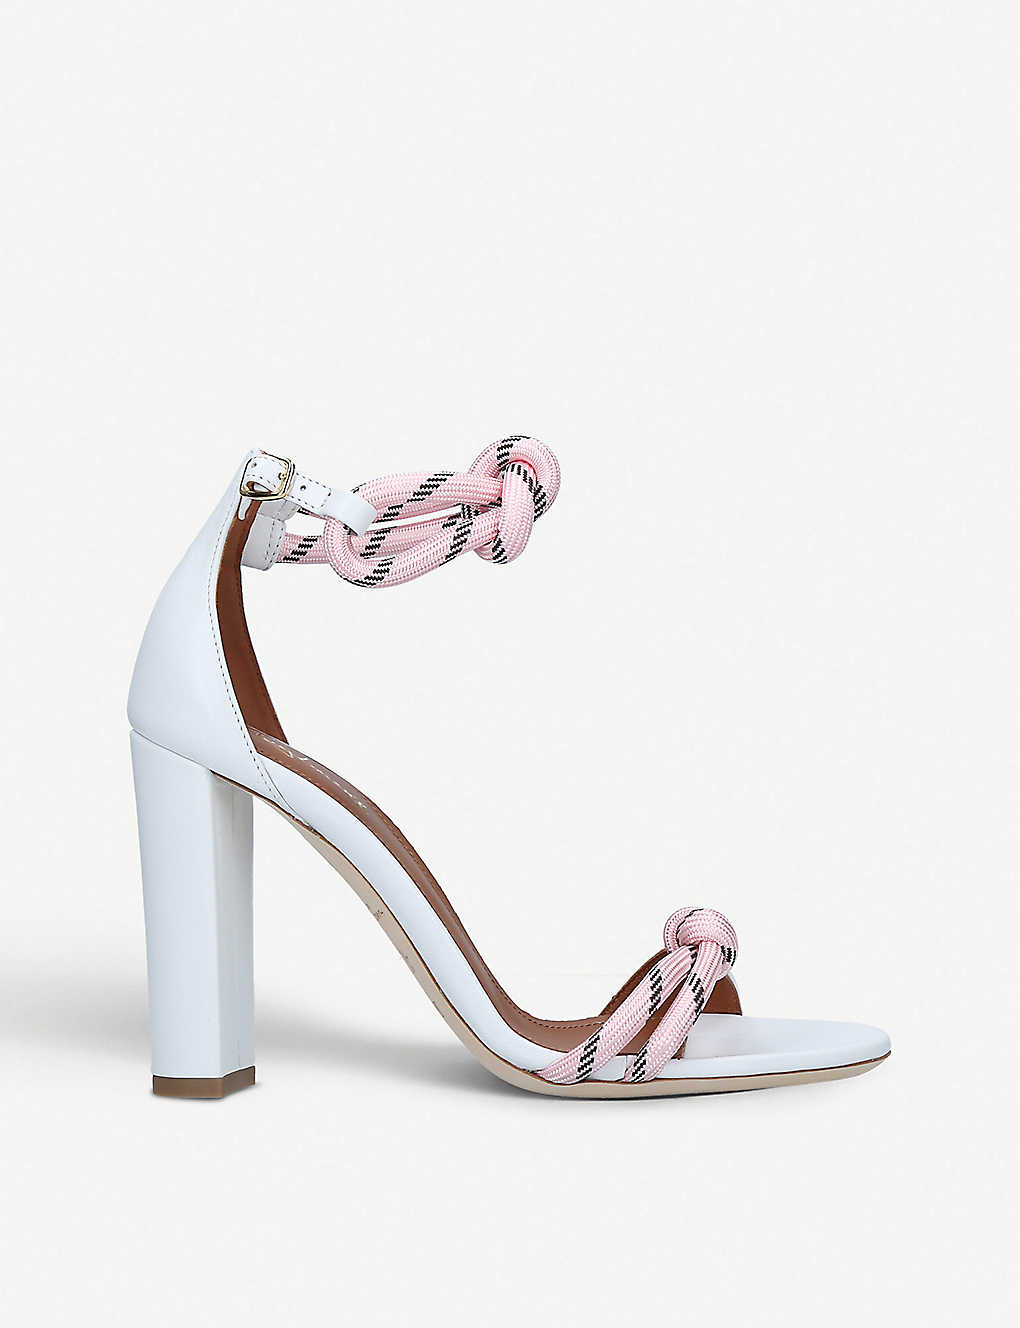 d0907a2db1 MALONE SOULIERS - Norah Luwolt leather and rope sandals | Selfridges.com